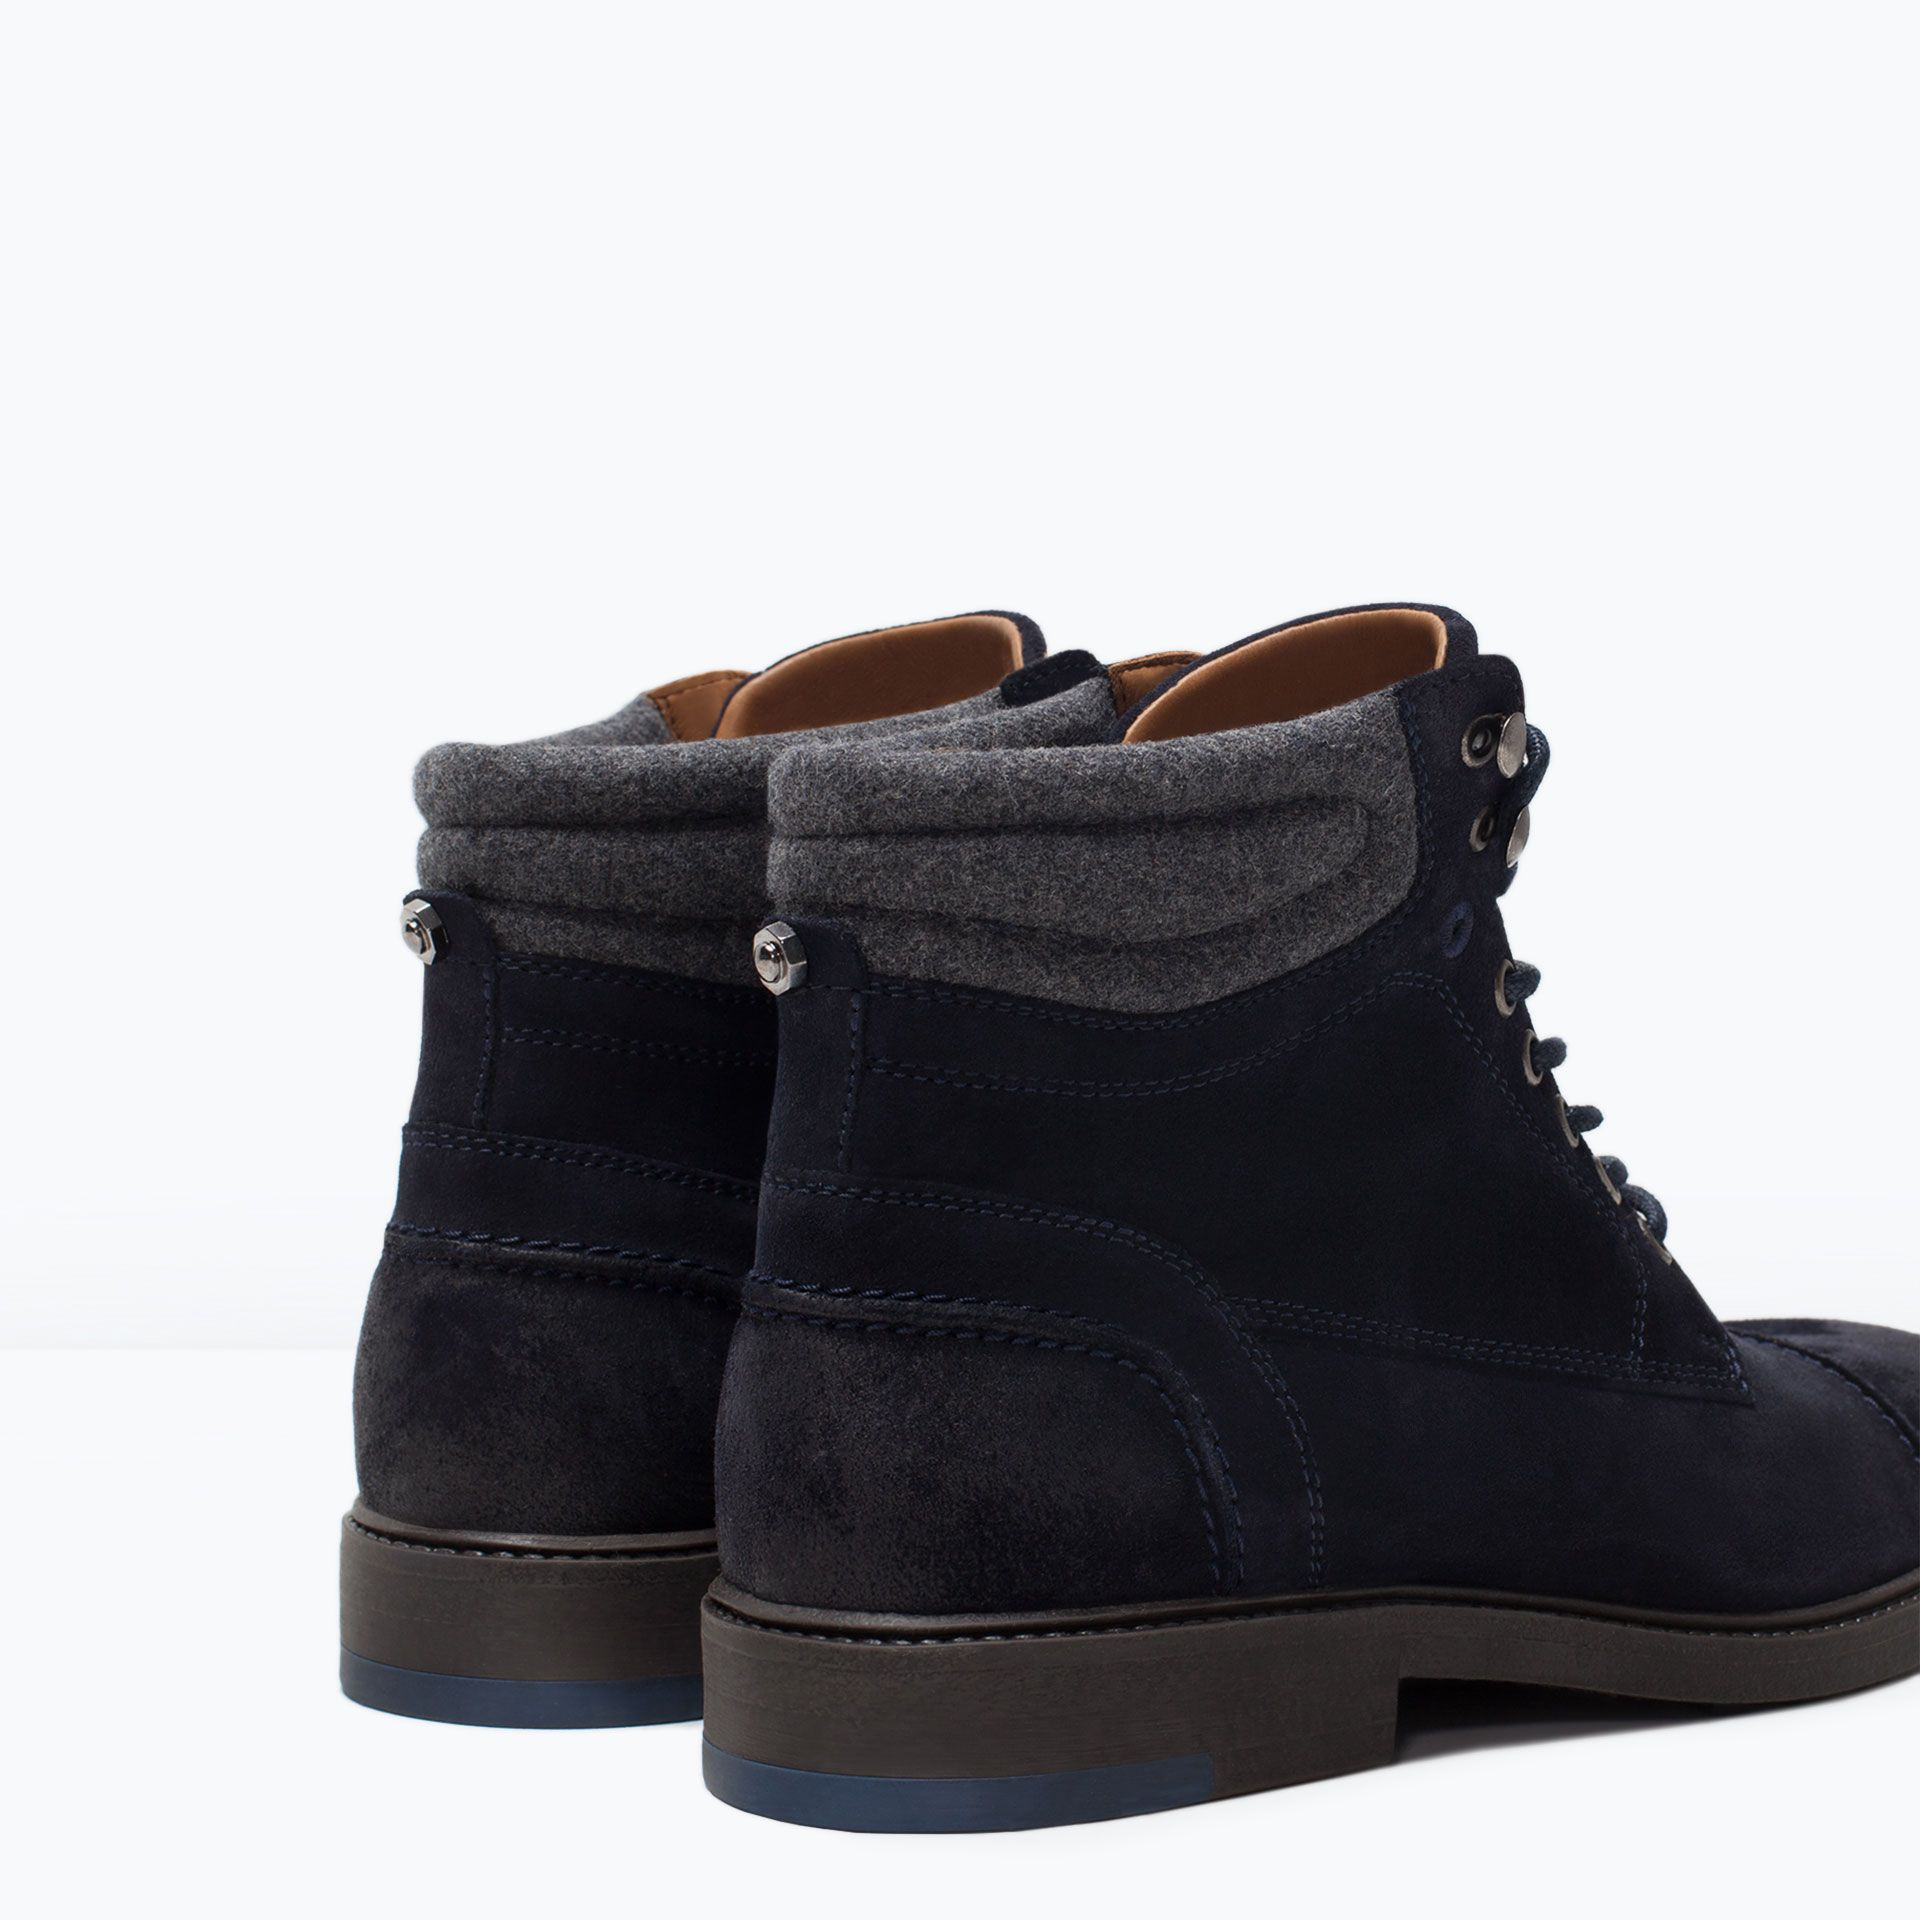 SUEDE WORKER BOOT - Shoes - MAN | ZARA United States